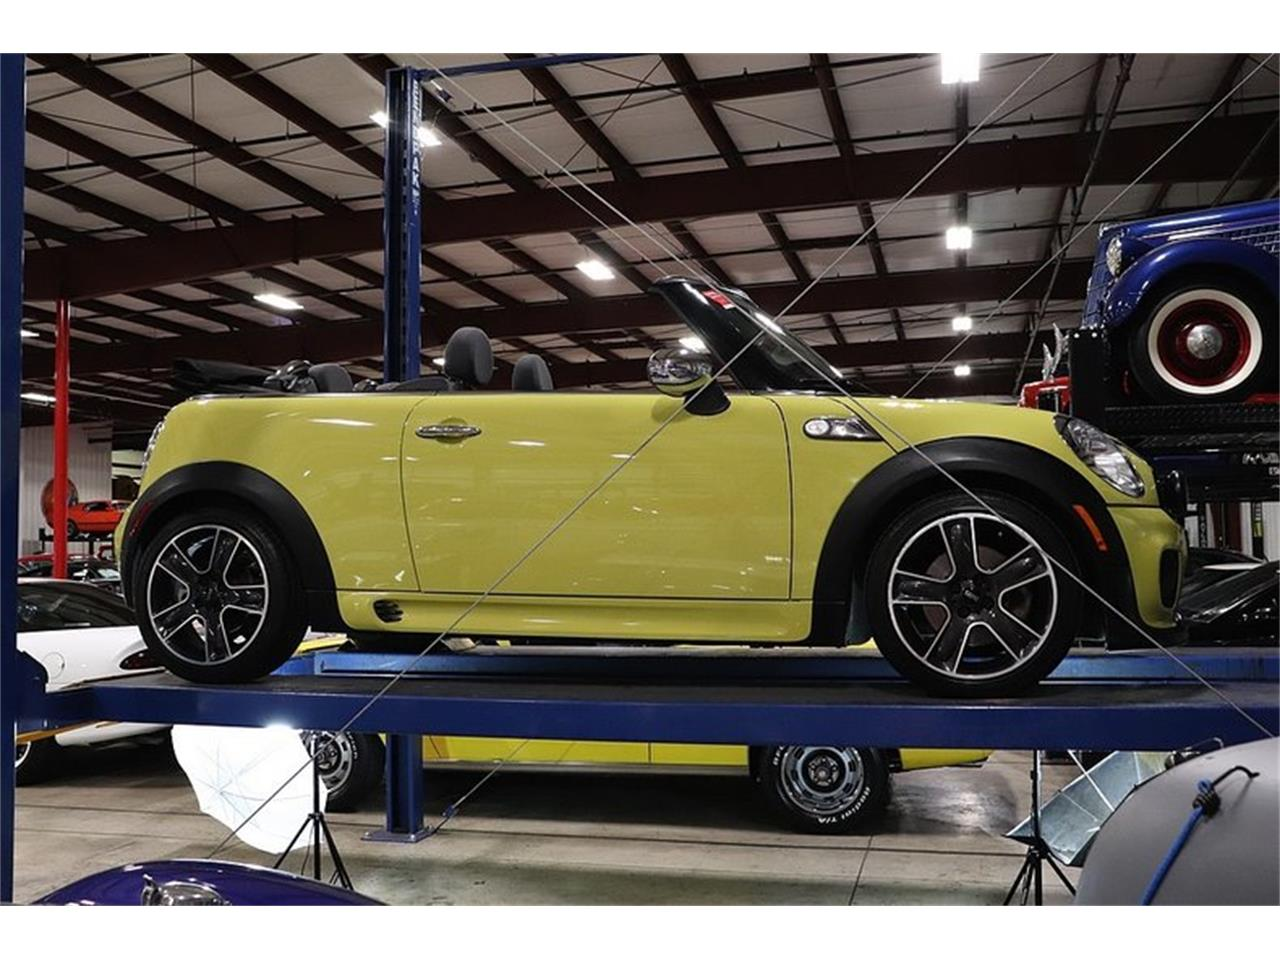 2009 MINI Cooper for sale in Kentwood, MI – photo 77